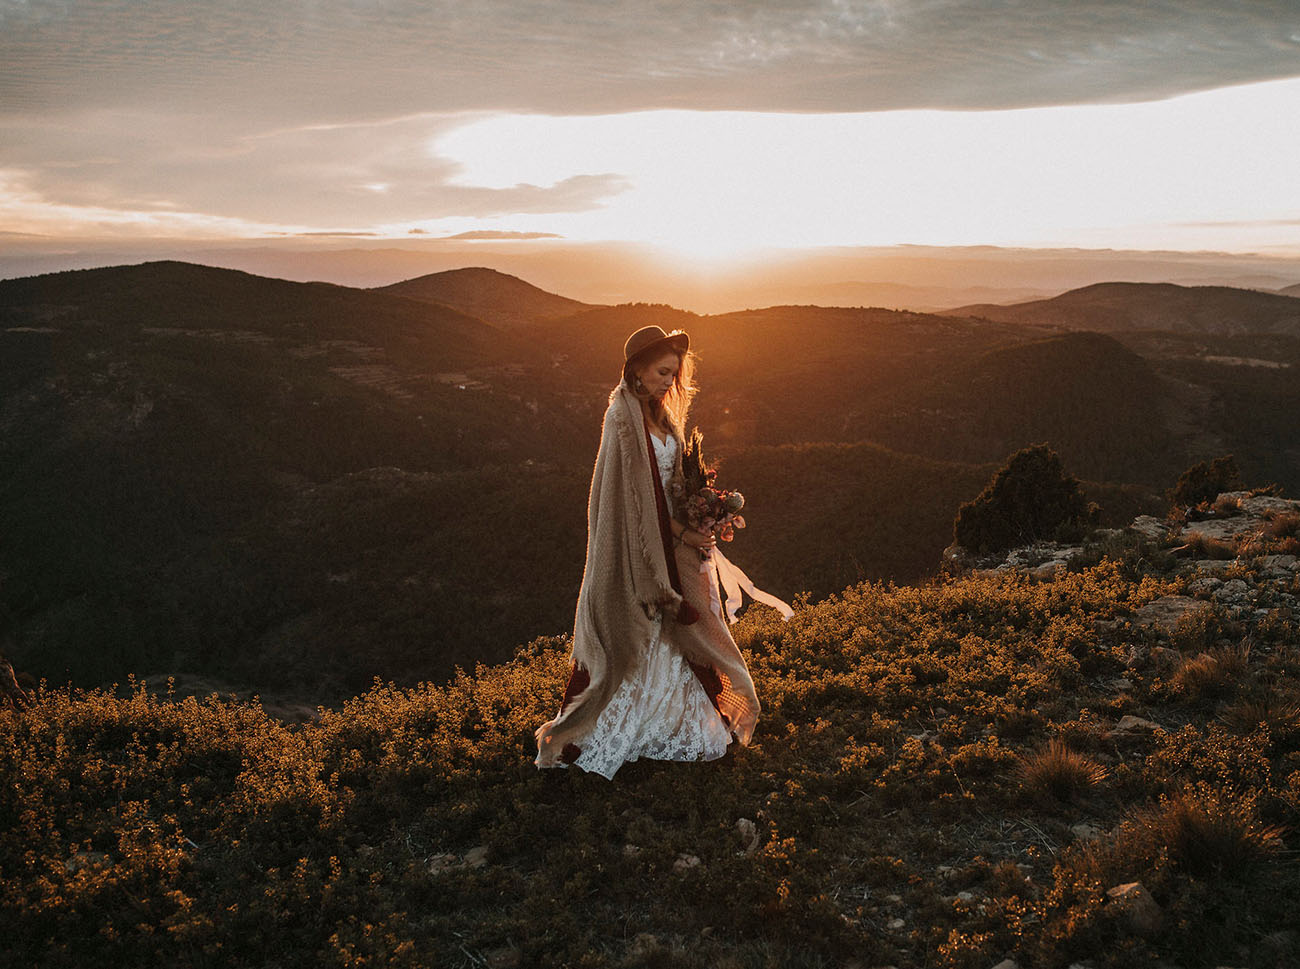 A nature lover's dream elopement in the Spanish mountains